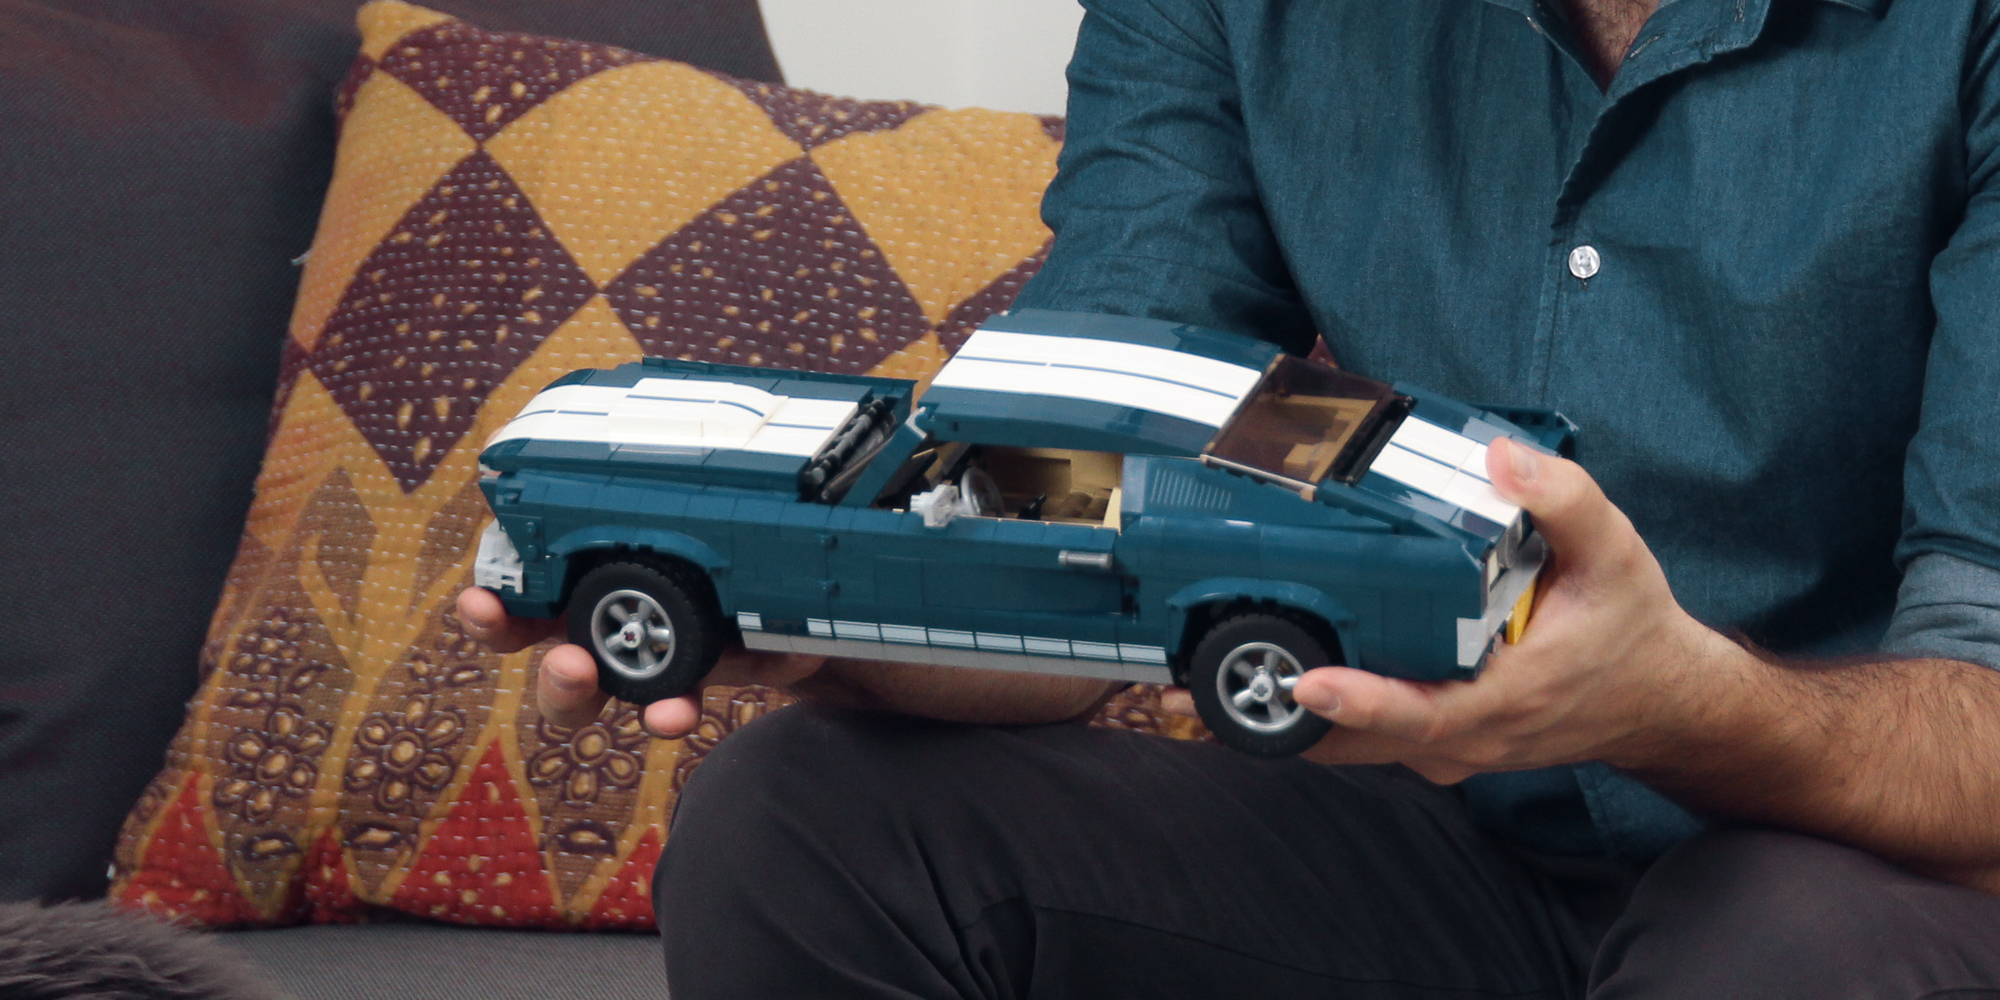 Lego Ford Mustang Recreates A Classic Car In A 1470 Piece Set